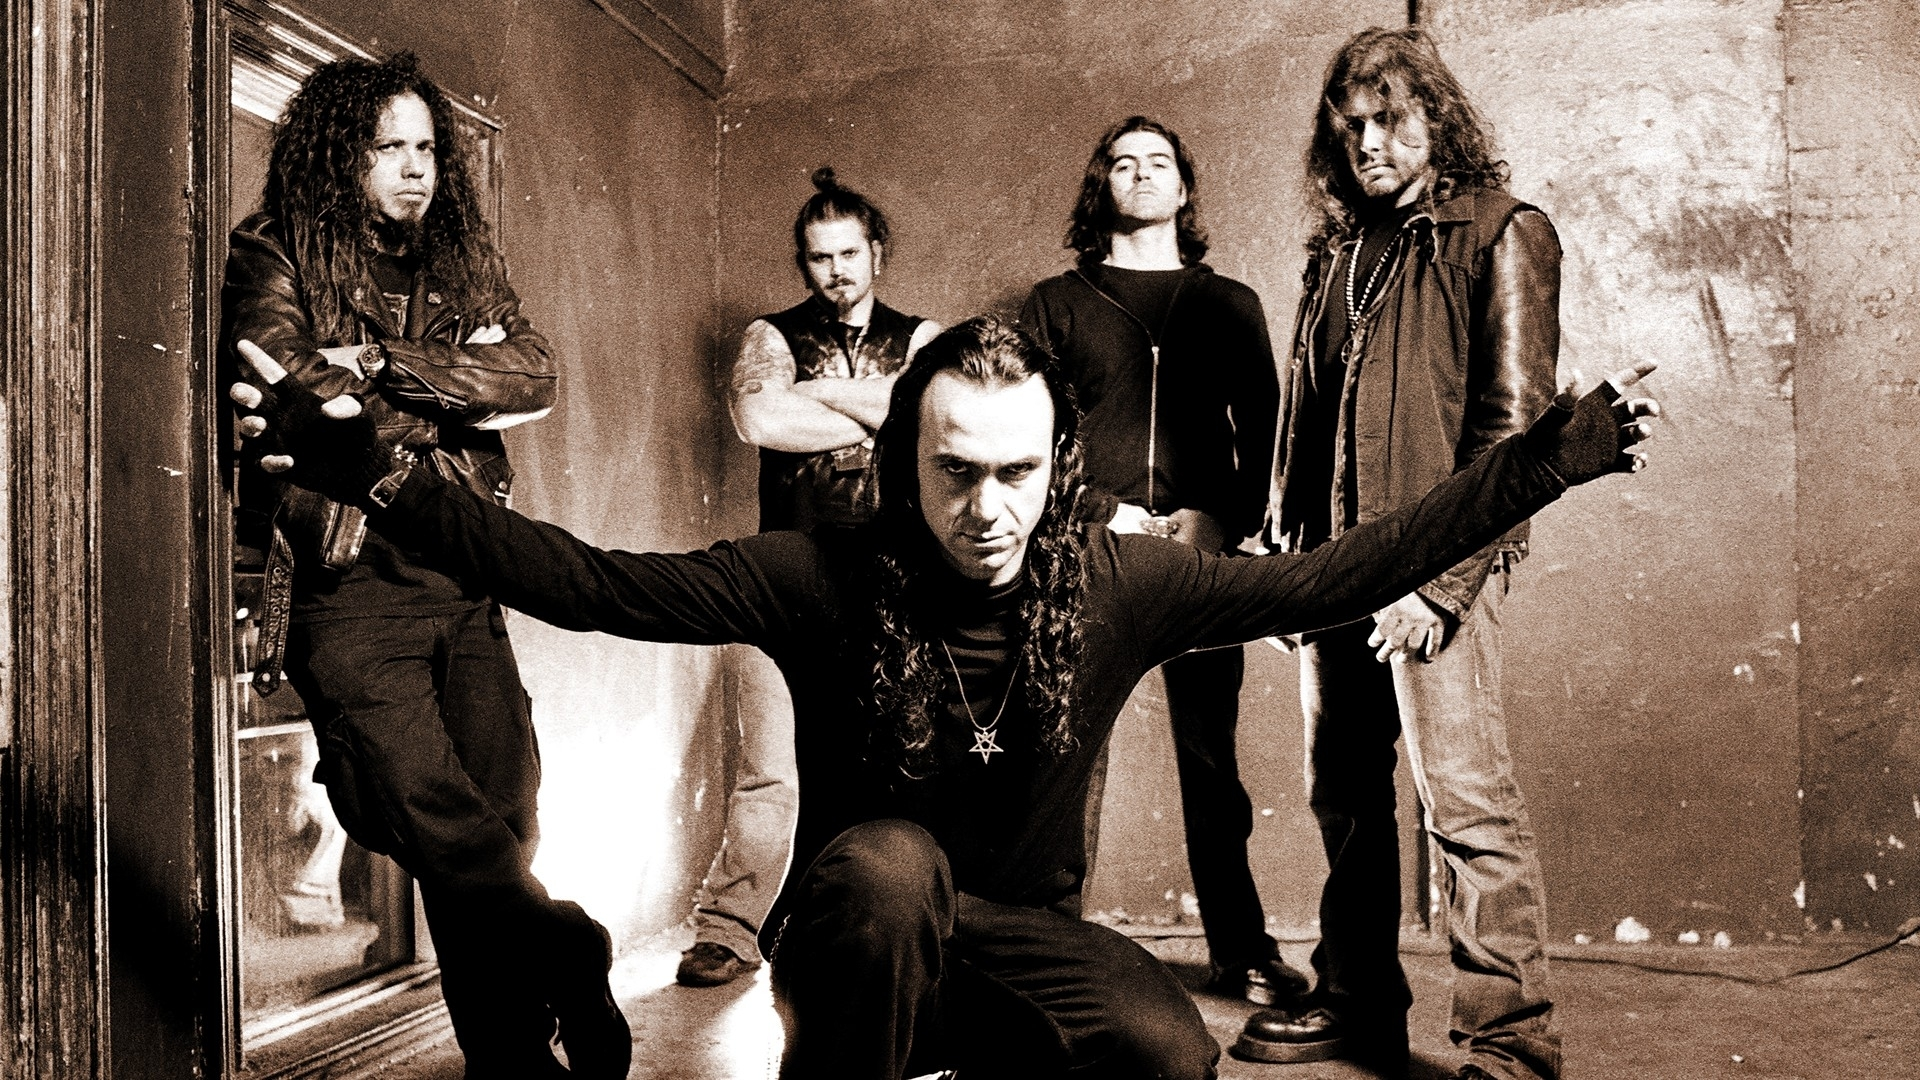 Moonspell. Fuente: www.metalcry.com